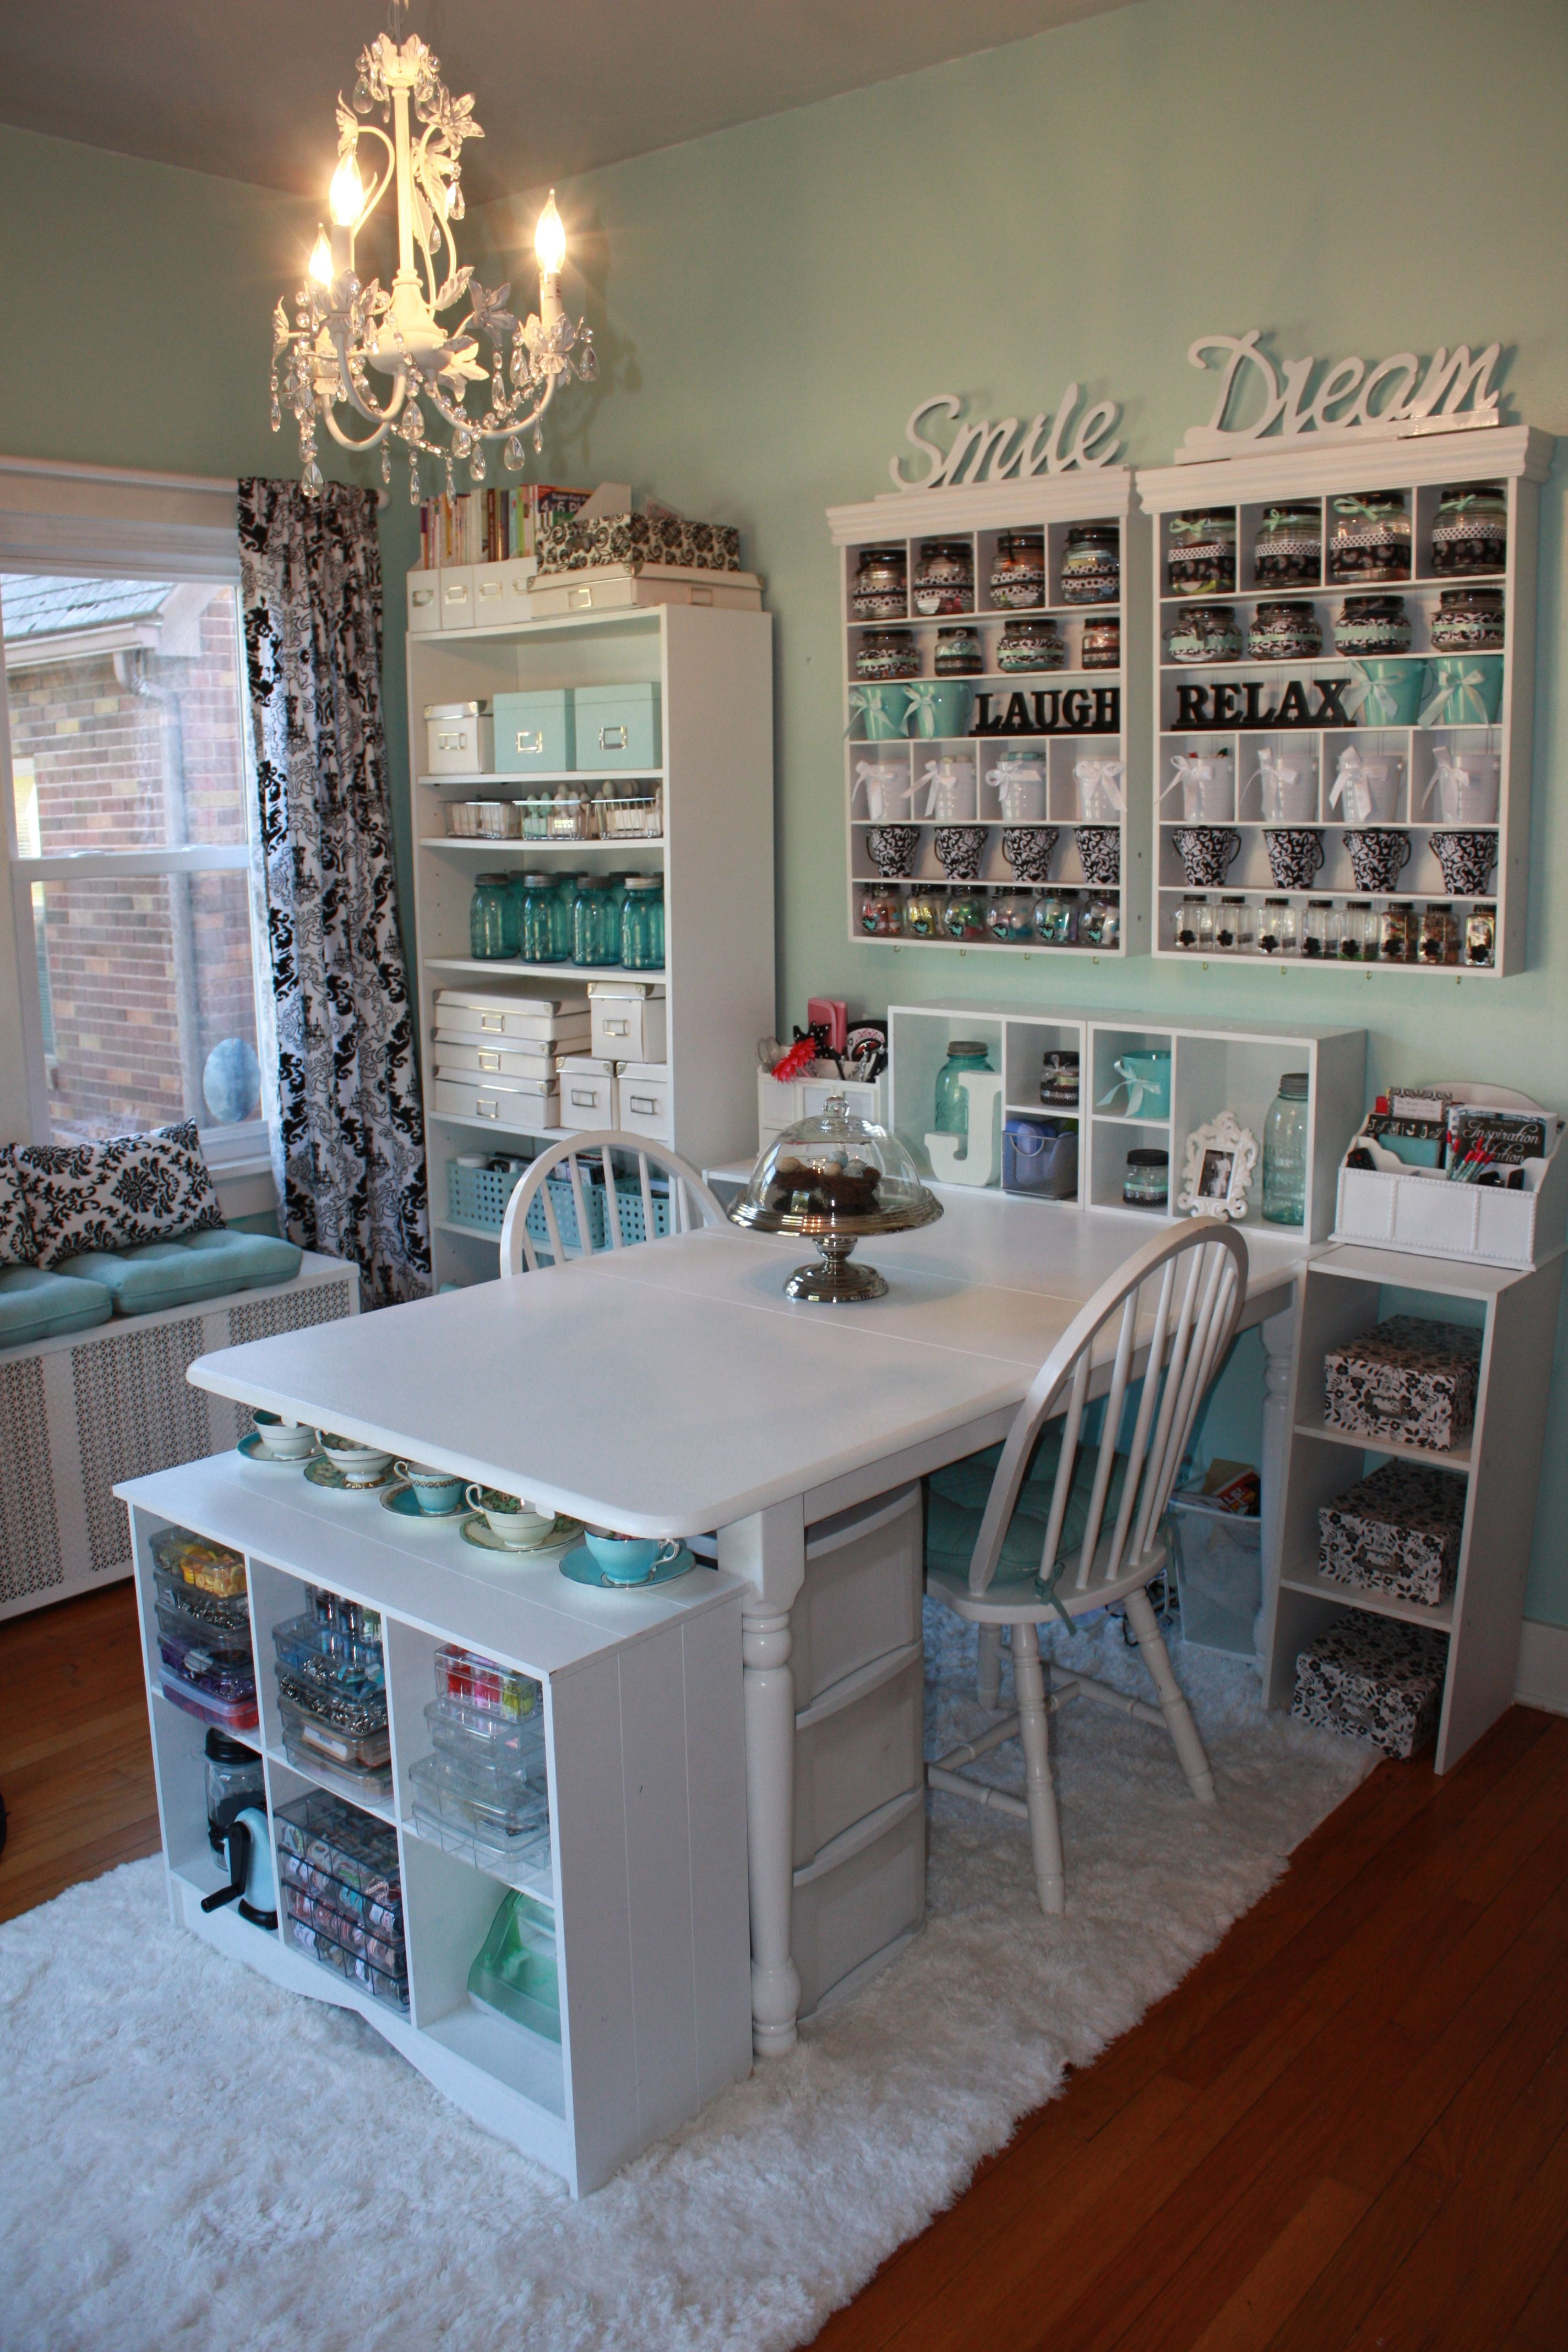 10 creative craft rooms with style diy craft room on diy home decor on a budget apartment ideas id=88900